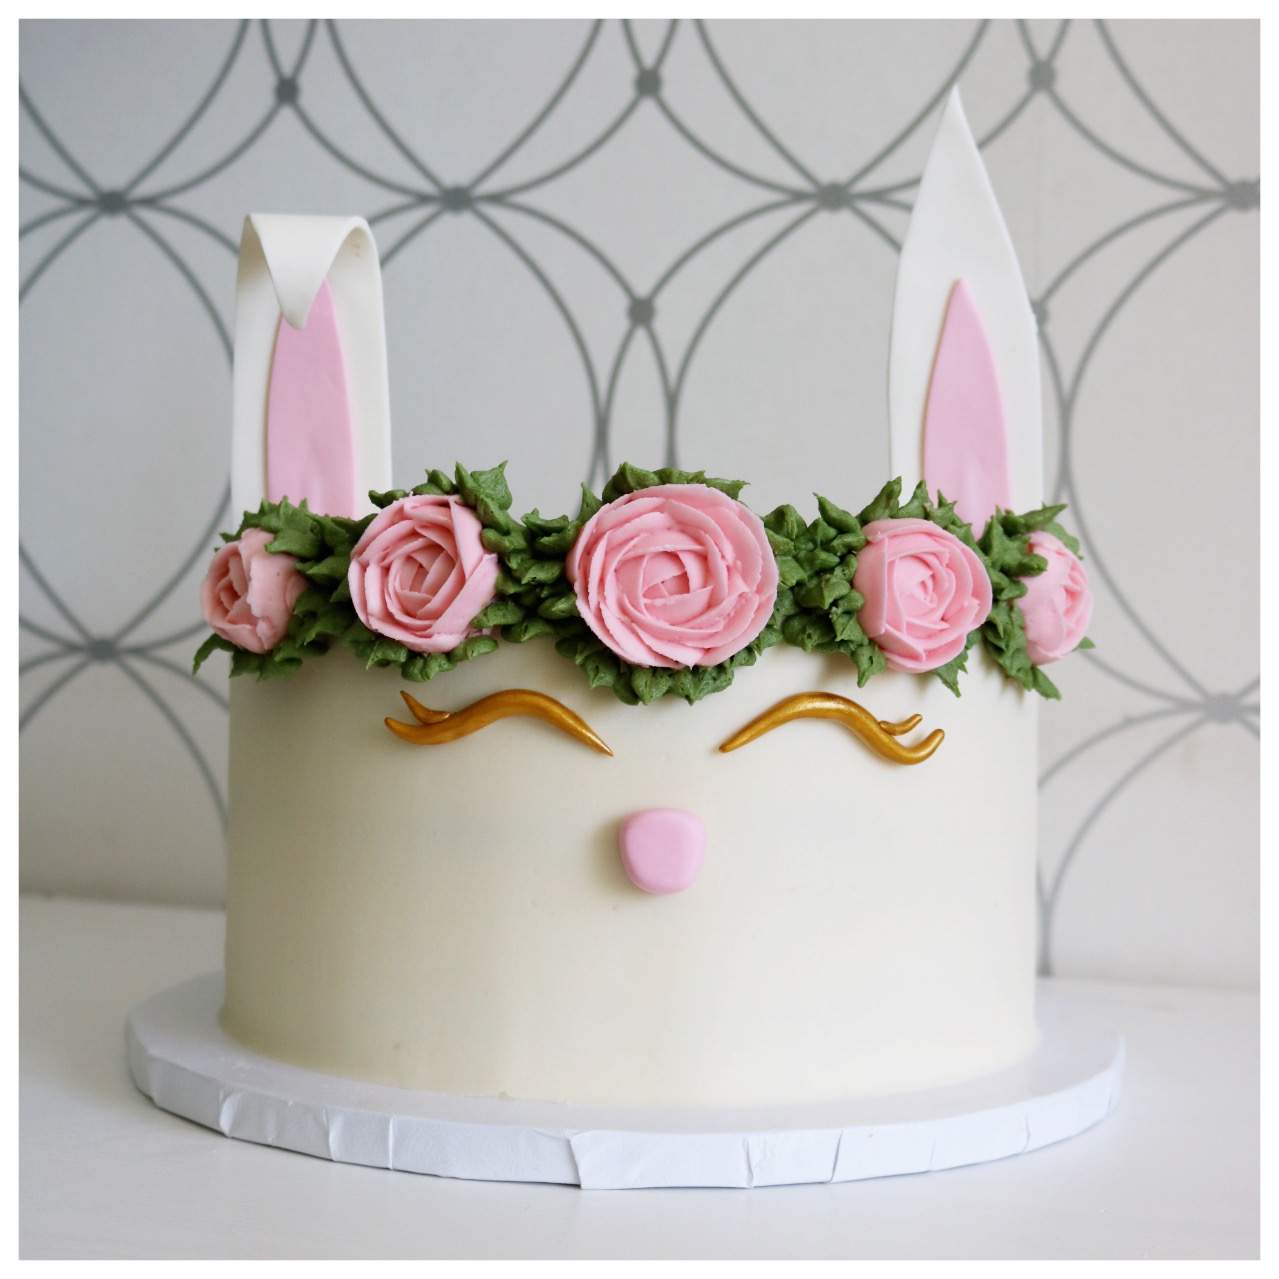 Ivory bunny fondant cake with ears and pastel sugar flower wreath